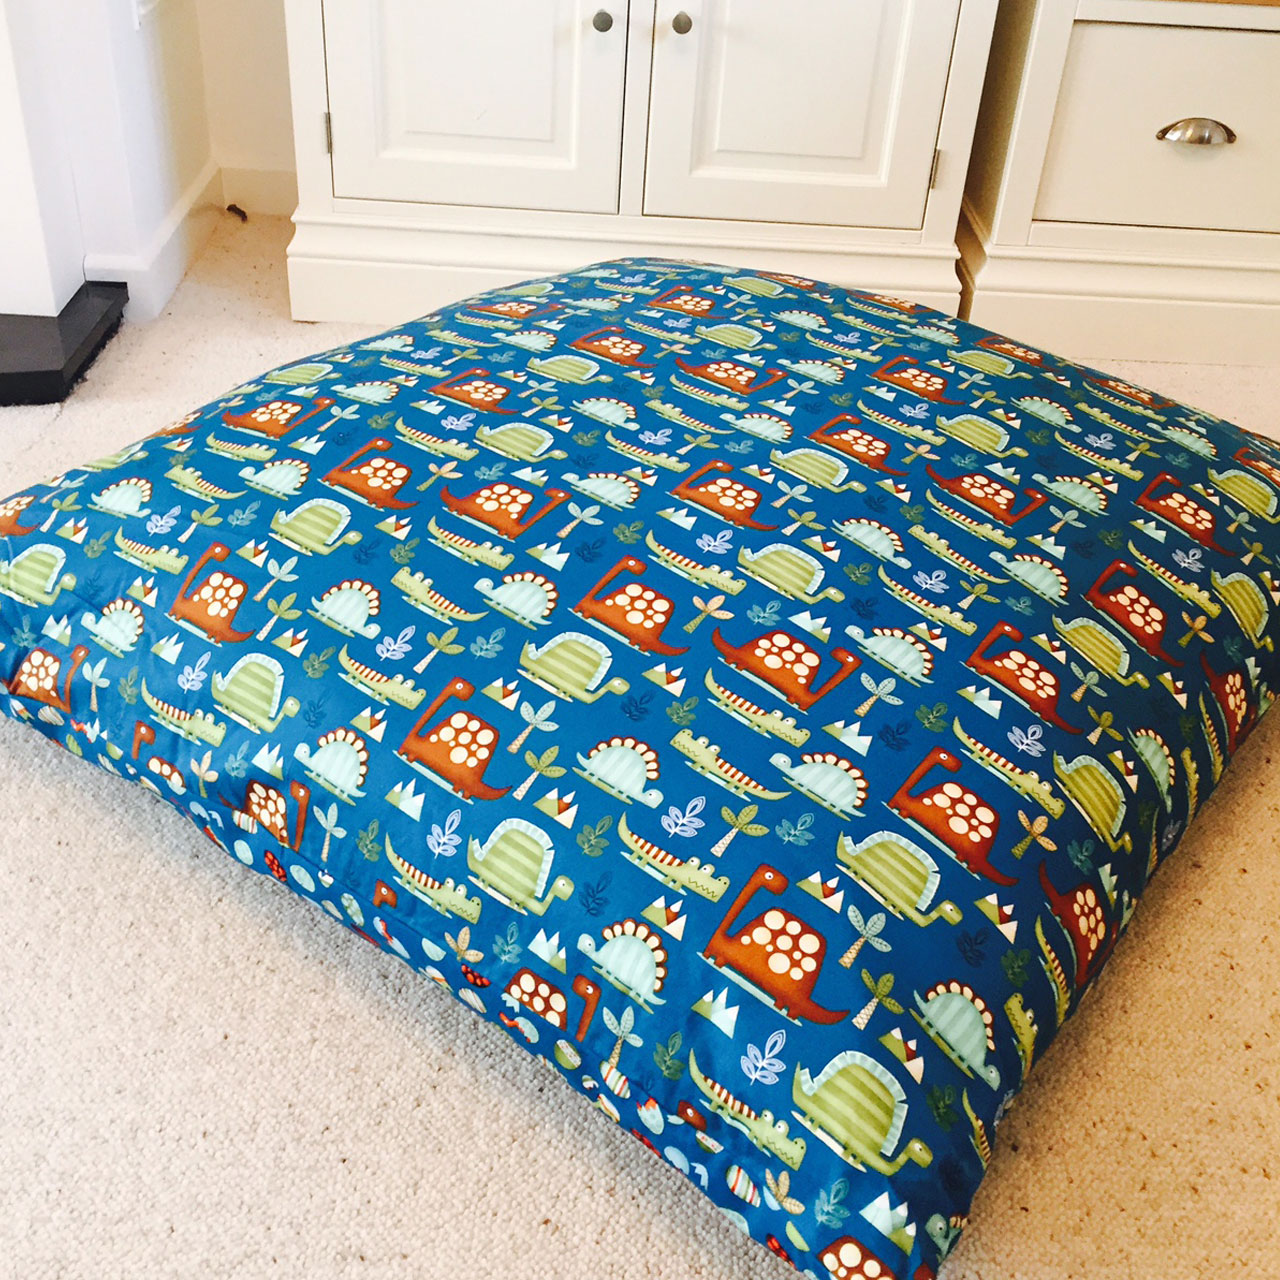 Oversized Floor Pillows Cushions : Boys Oversized Floor Cushion - Huge Squishy Cushions - Samuel And Rigby